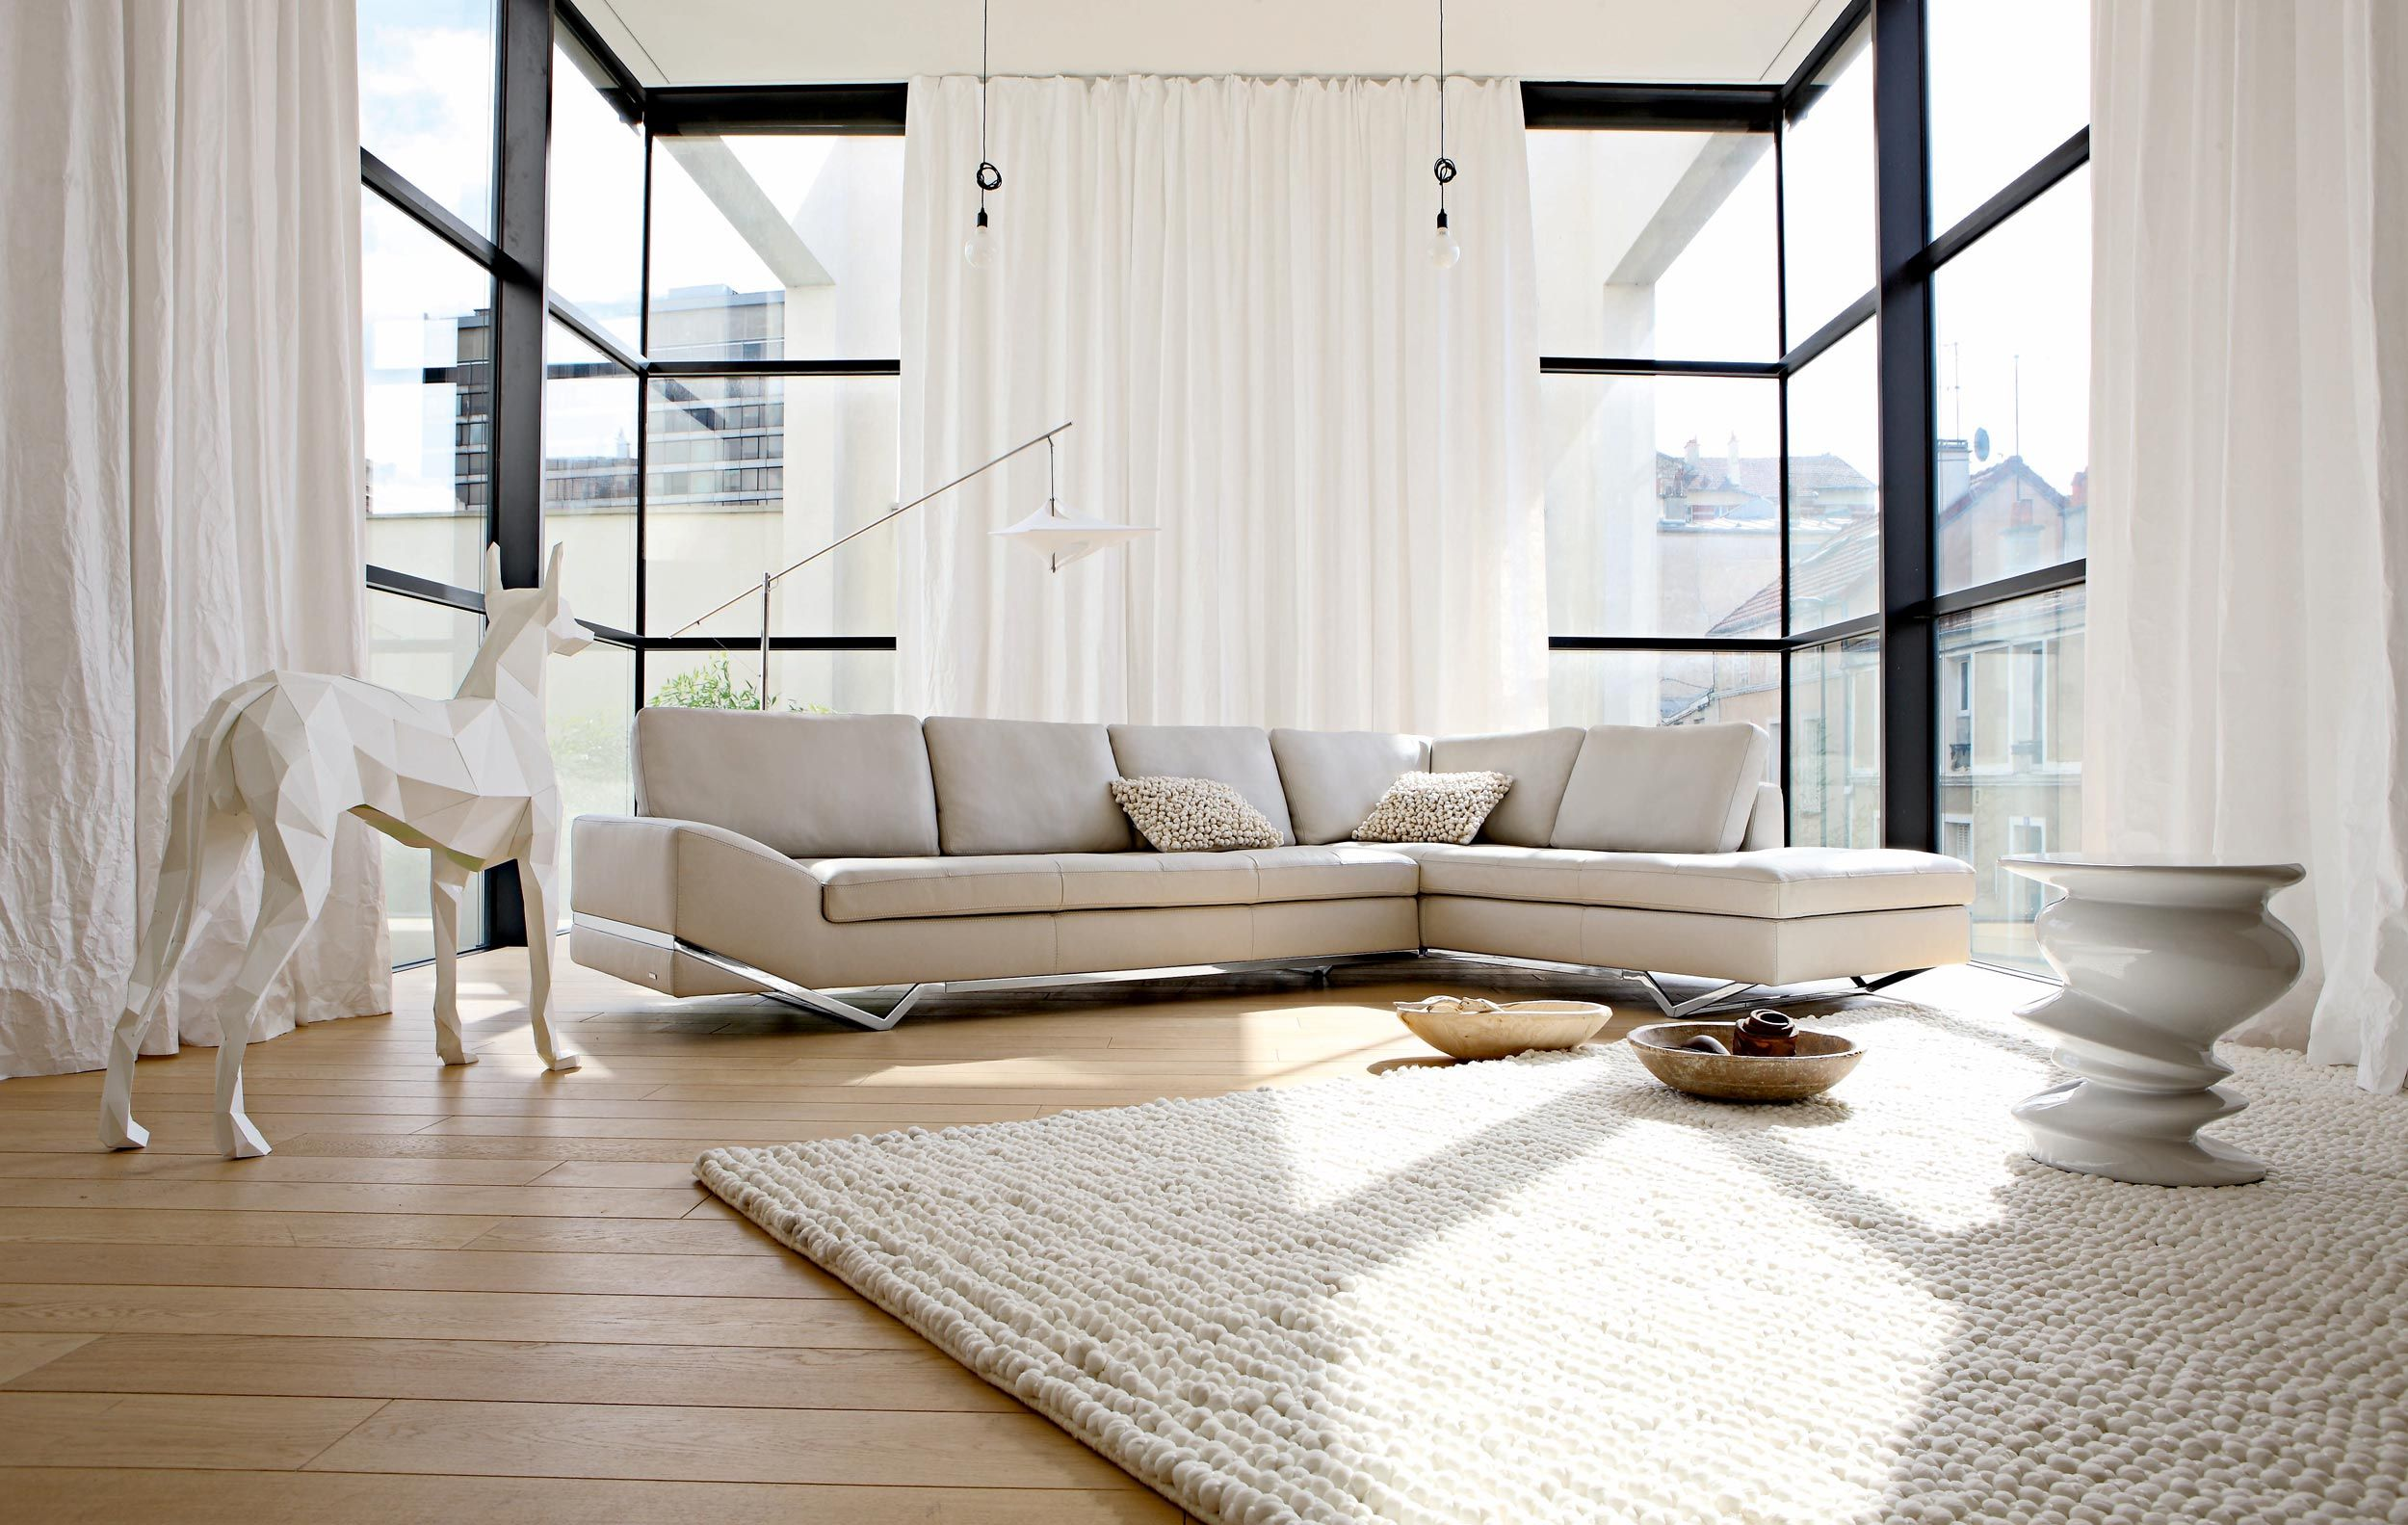 Living Room Inspiration 120 Modern Sofas By Roche Bobois: This Is The Intervalle Modular Sofa By Philippe Bouix For